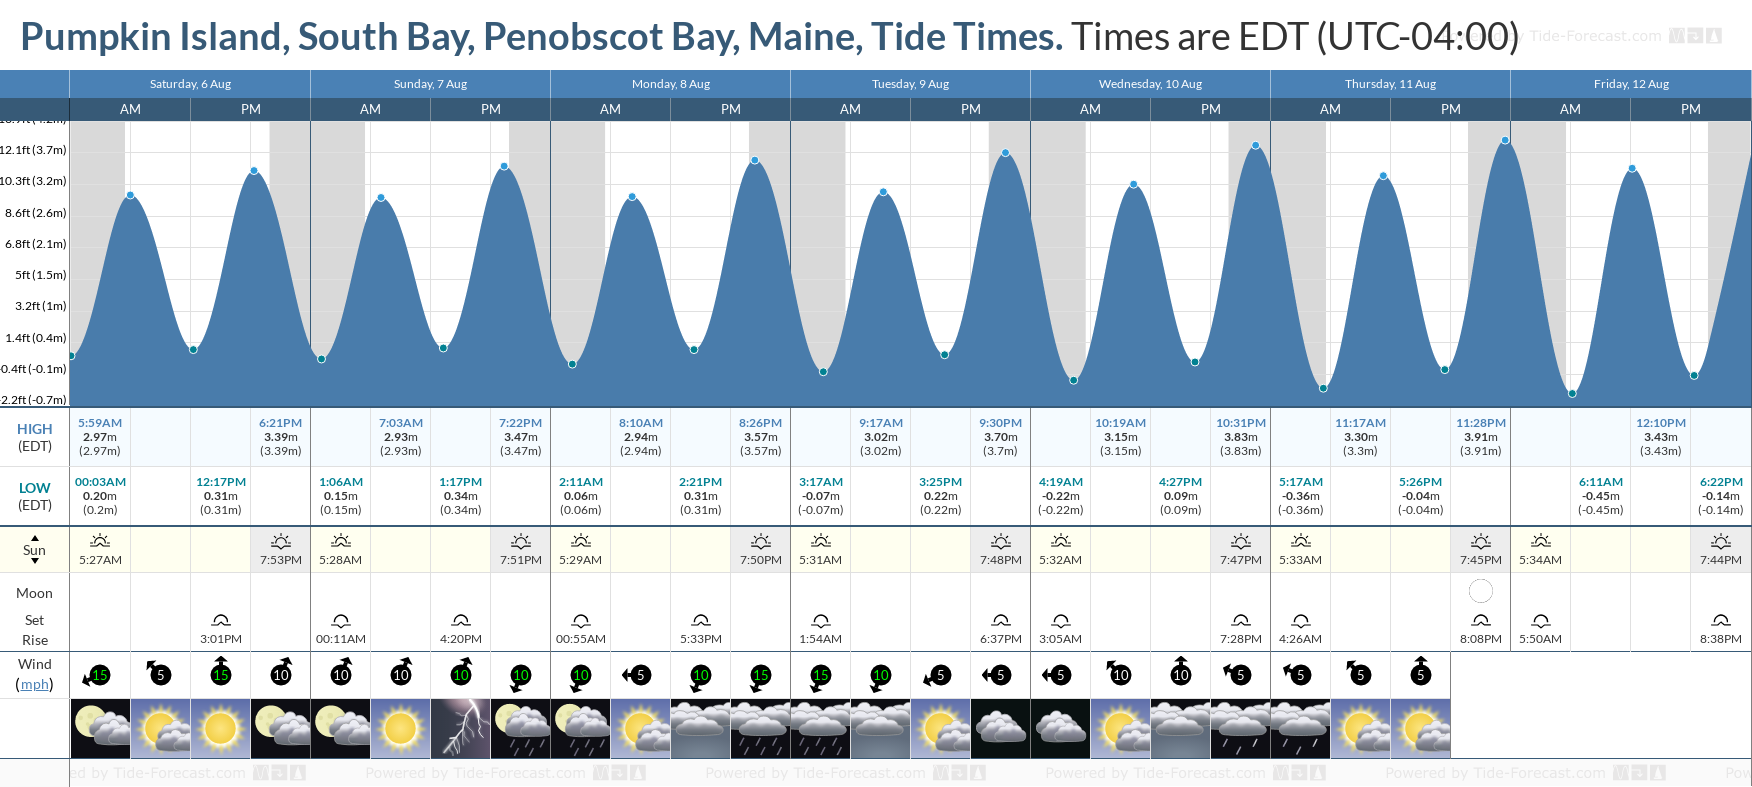 Pumpkin Island, South Bay, Penobscot Bay, Maine Tide Chart including high and low tide tide times for the next 7 days